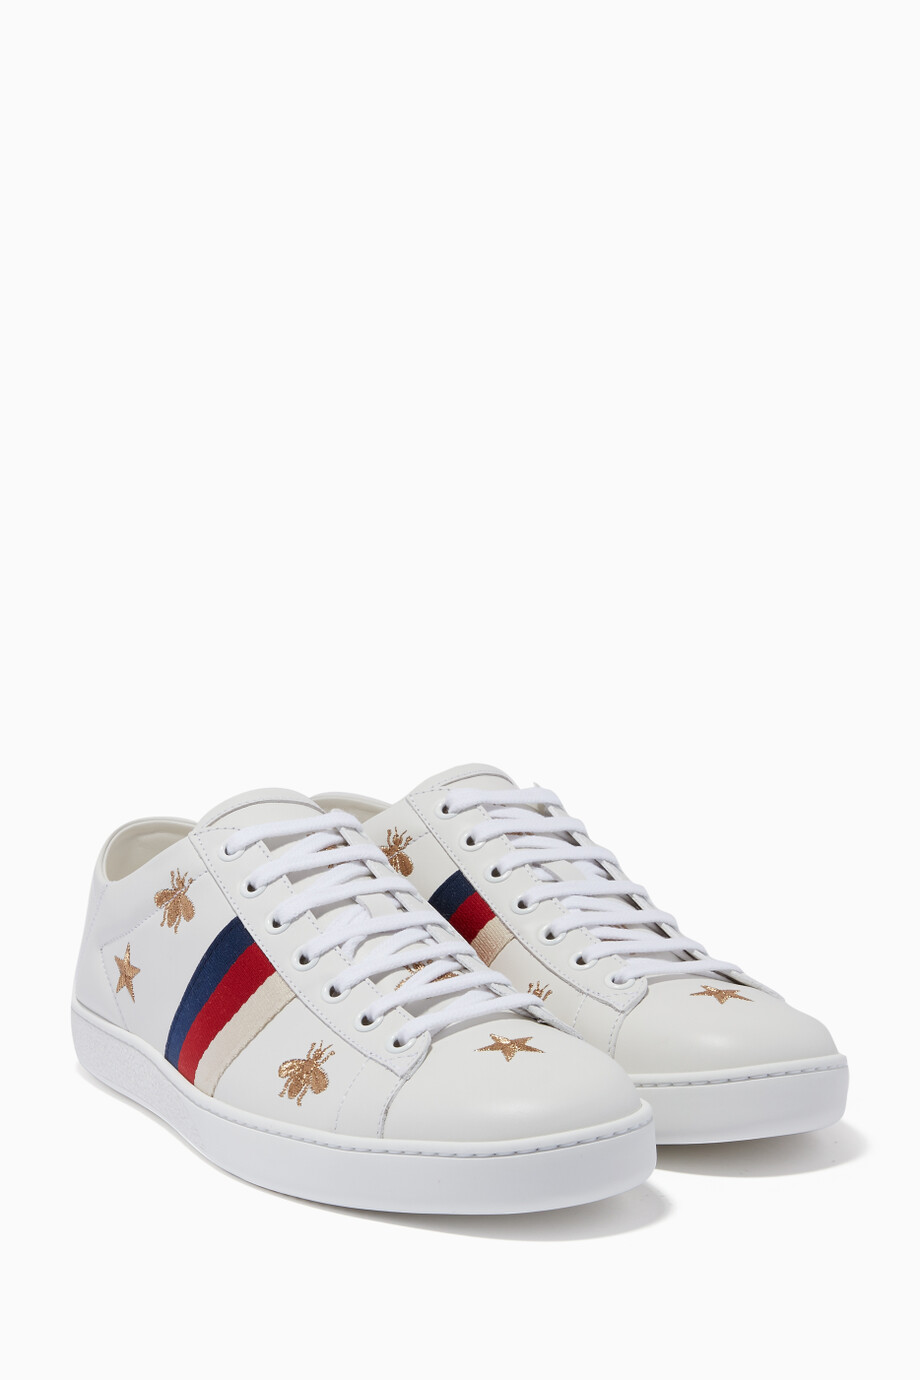 6b4599aad44 Shop Gucci White White Ace Sylvie Bee   Star Embroidered Sneakers ...